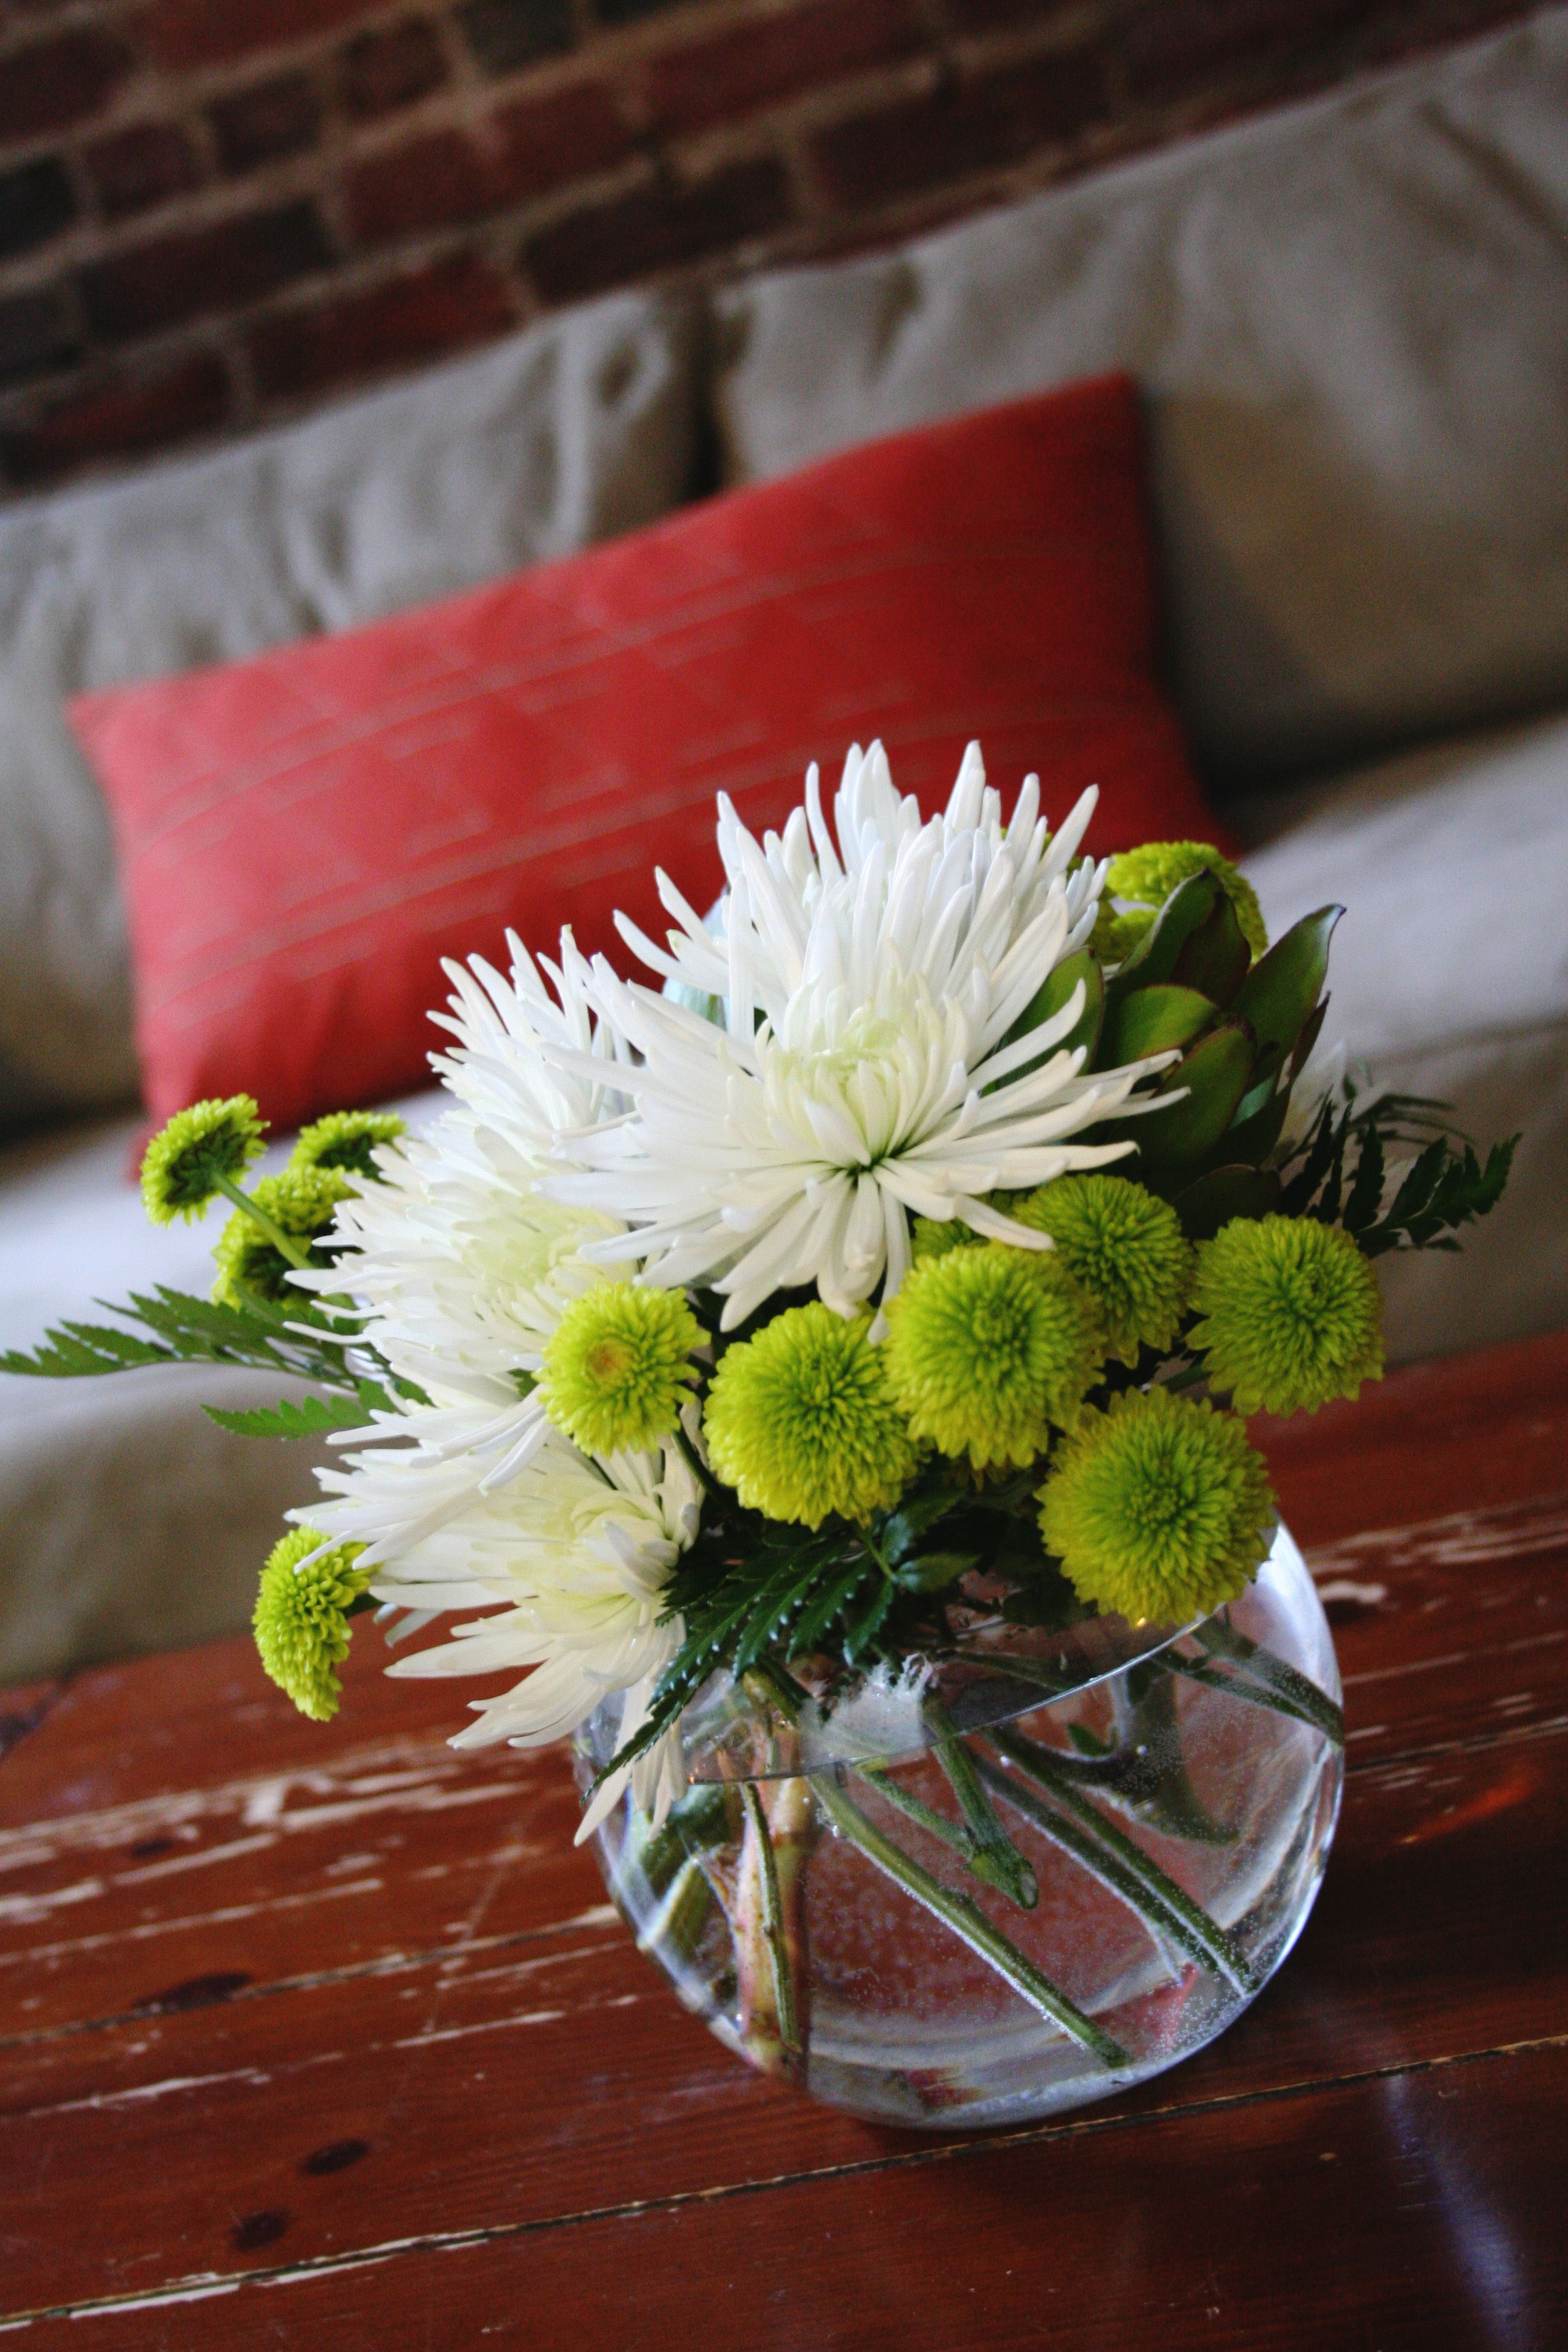 Green button mums and white spider flowering